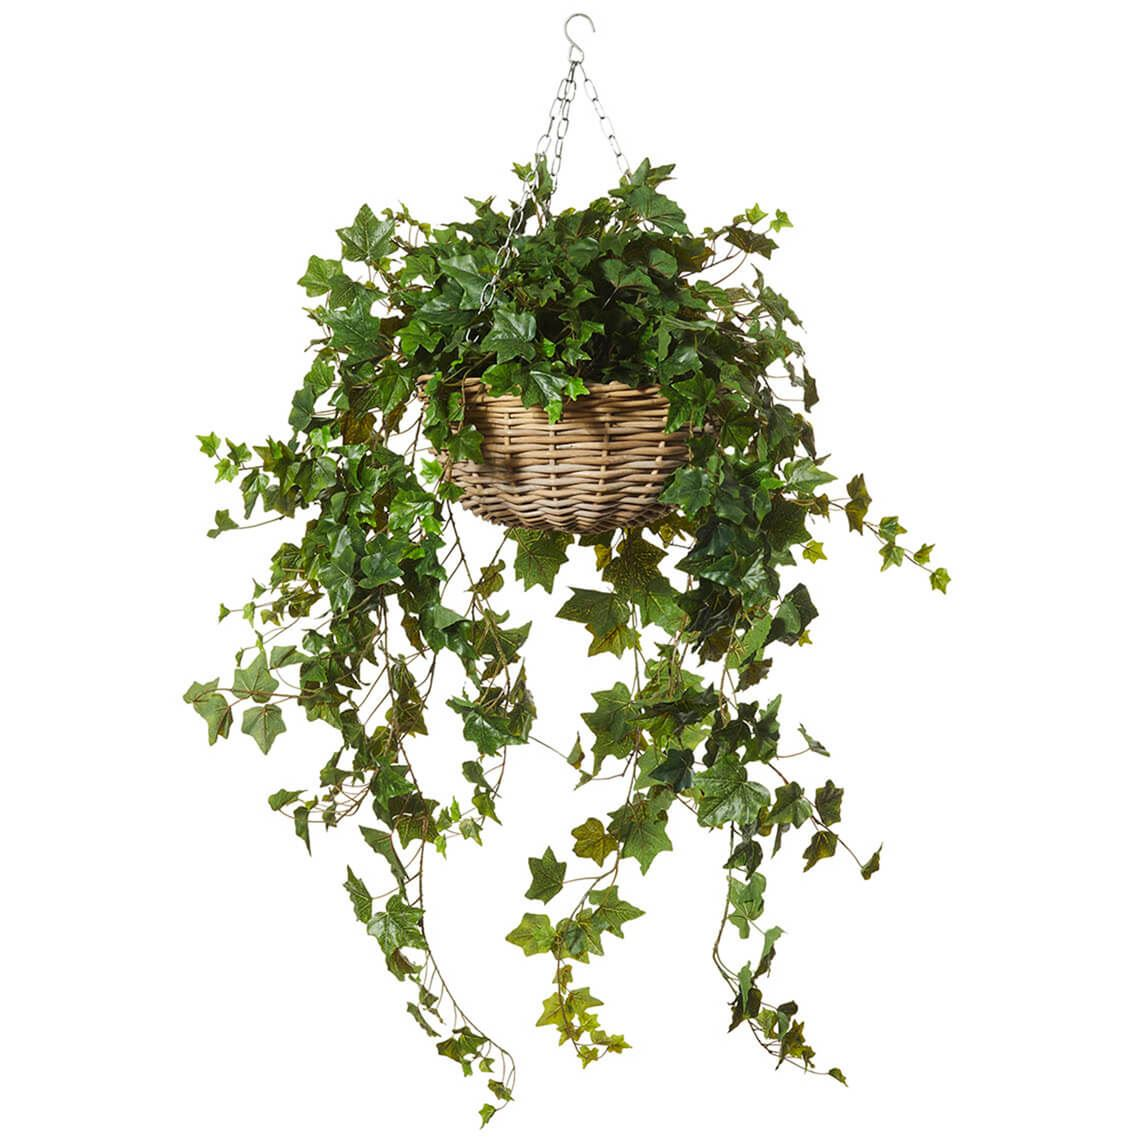 Forest Ivy Bush Artificial Foliage Size W 65cm x D 80cm x H 130cm in Green Plastic/Wire Freedom by Freedom, a Plants for sale on Style Sourcebook